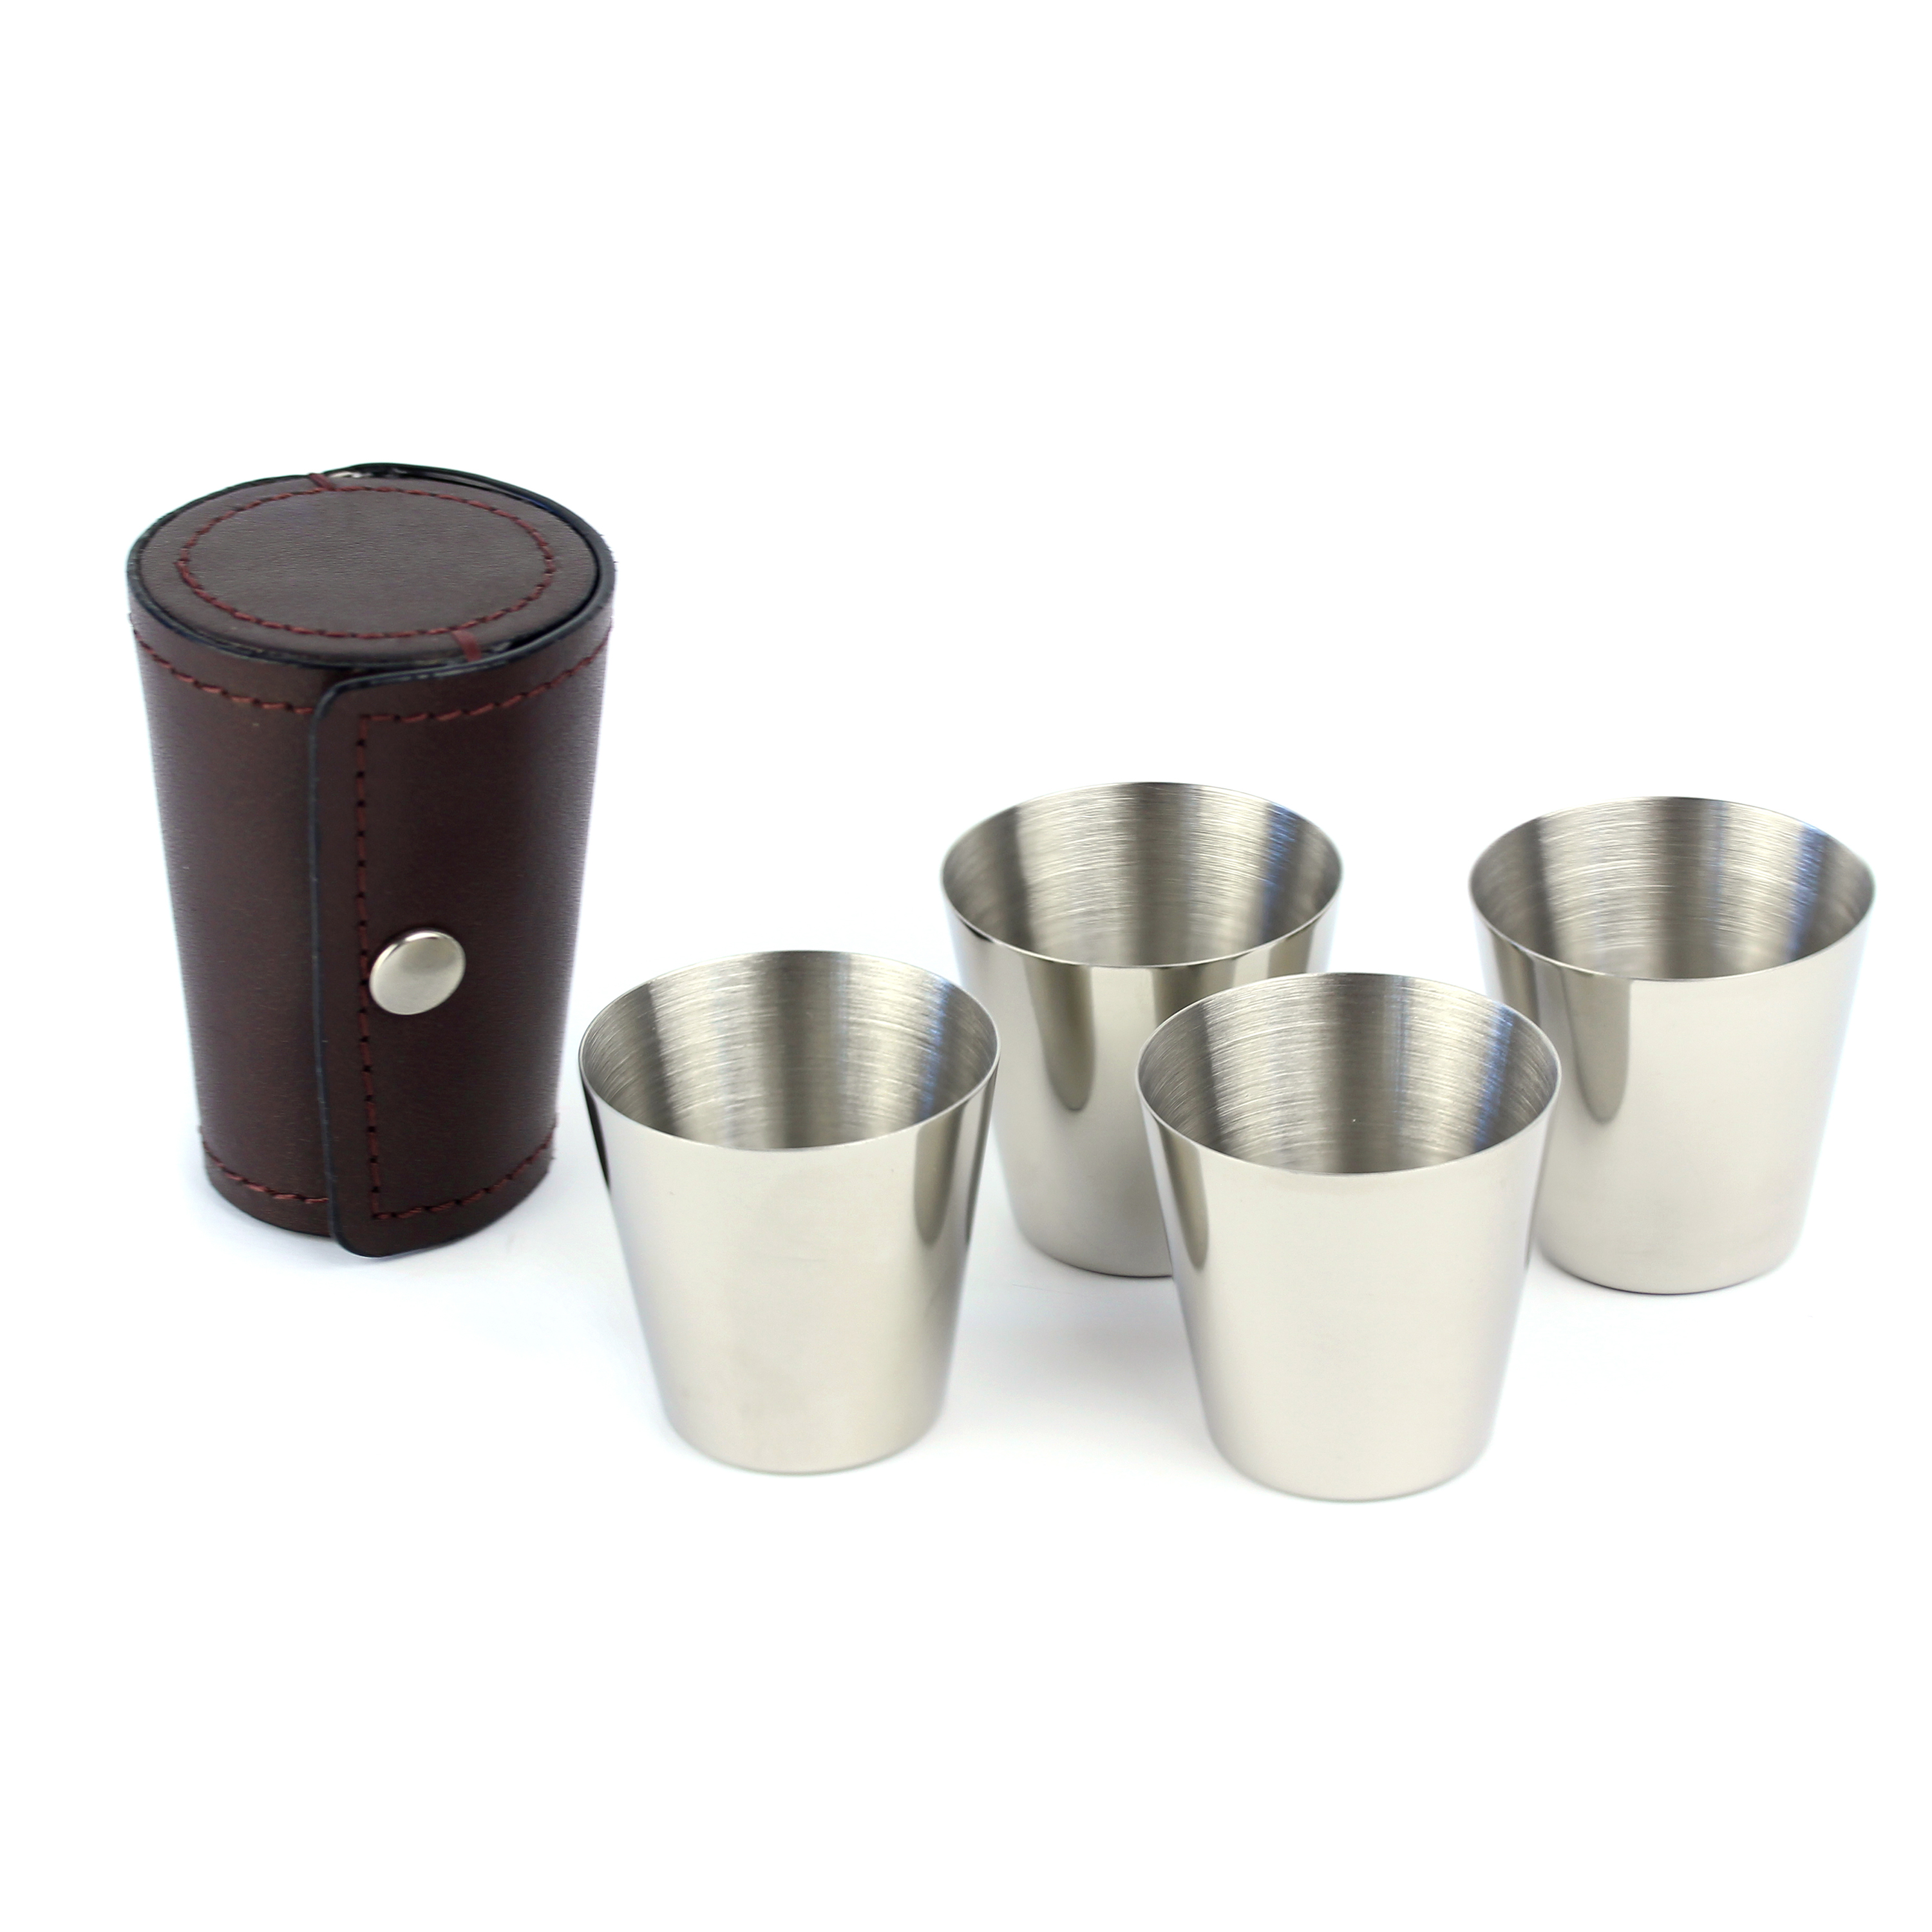 An image of 4 x Stainless Steel Nip Cups with Burgundy Brown Leather Pouch